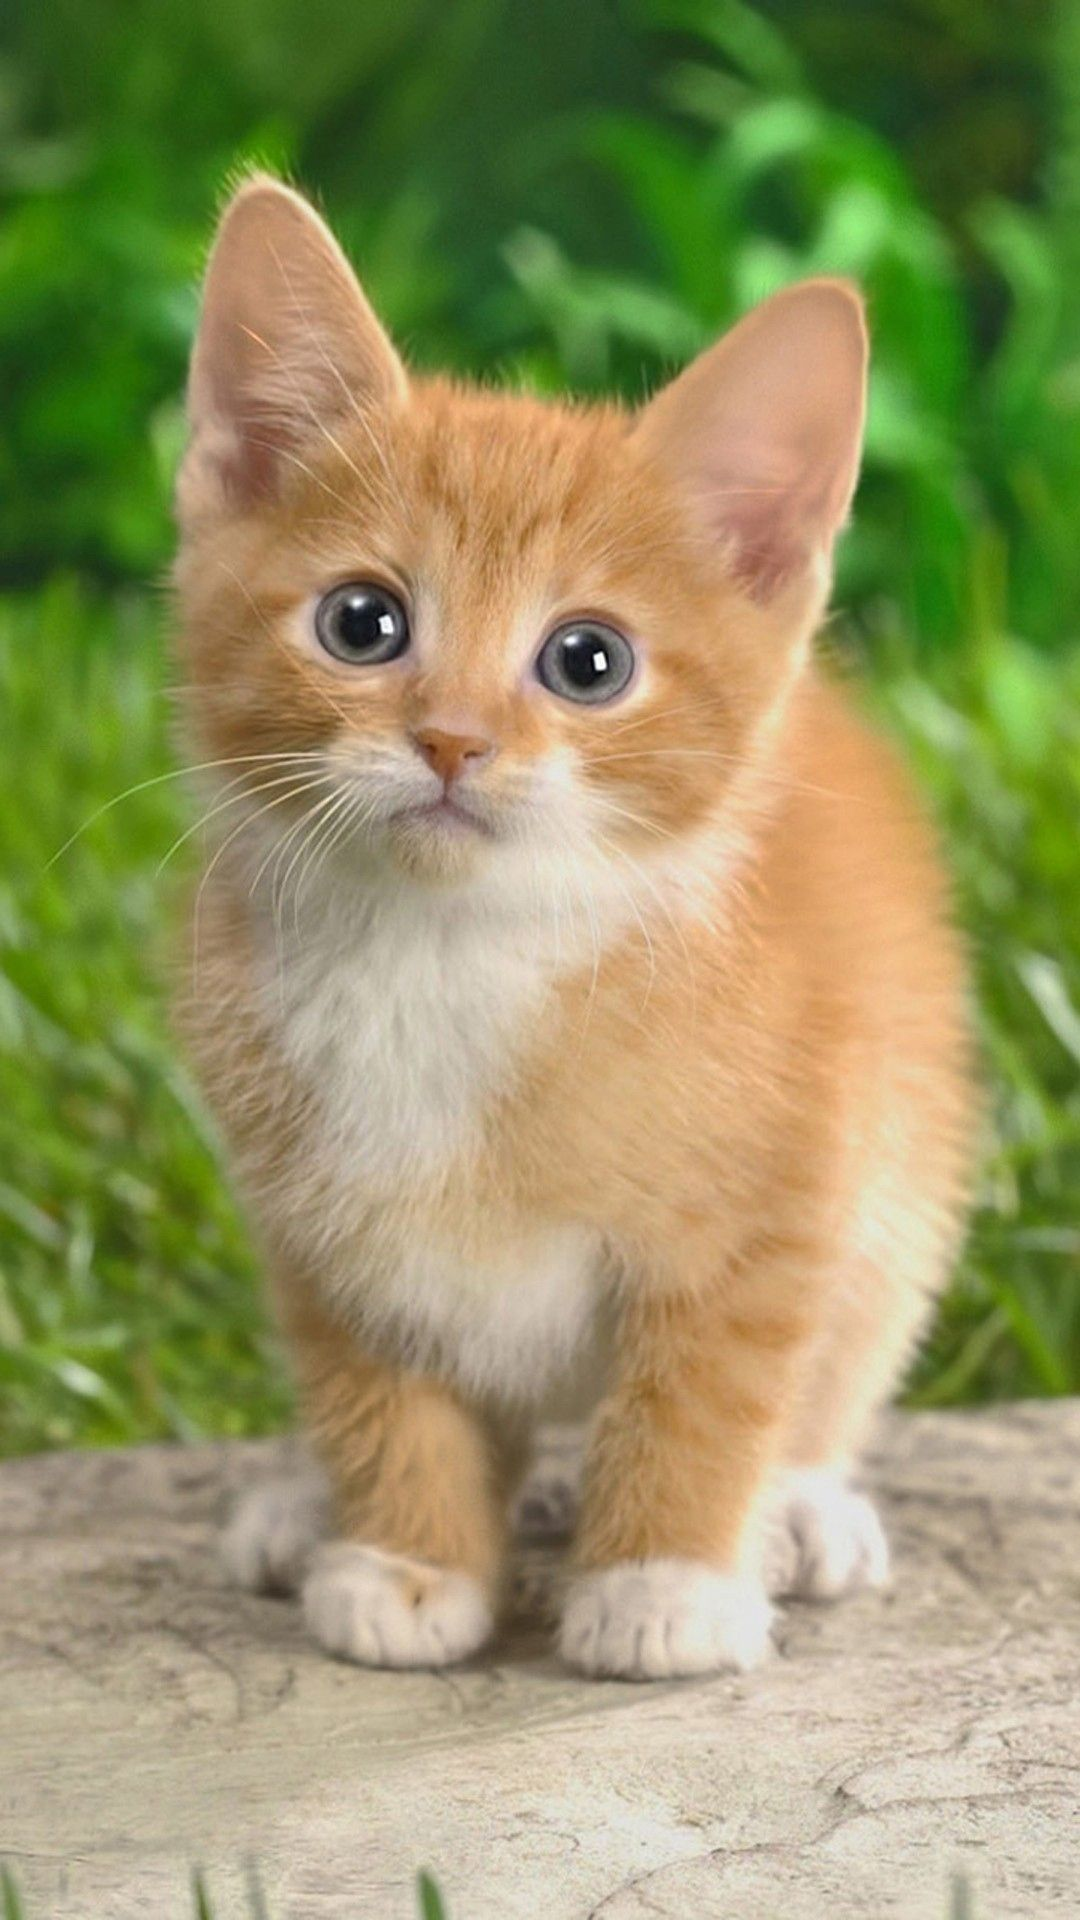 Cute Cat Iphone Wallpaper Download Best Cute Cat Iphone Wallpaperfor Iphone Wallpaper Inhigh Definition You Can Find O Cute Cats Kittens Cutest Cute Animals Best of wallpaper pictures of cute cats